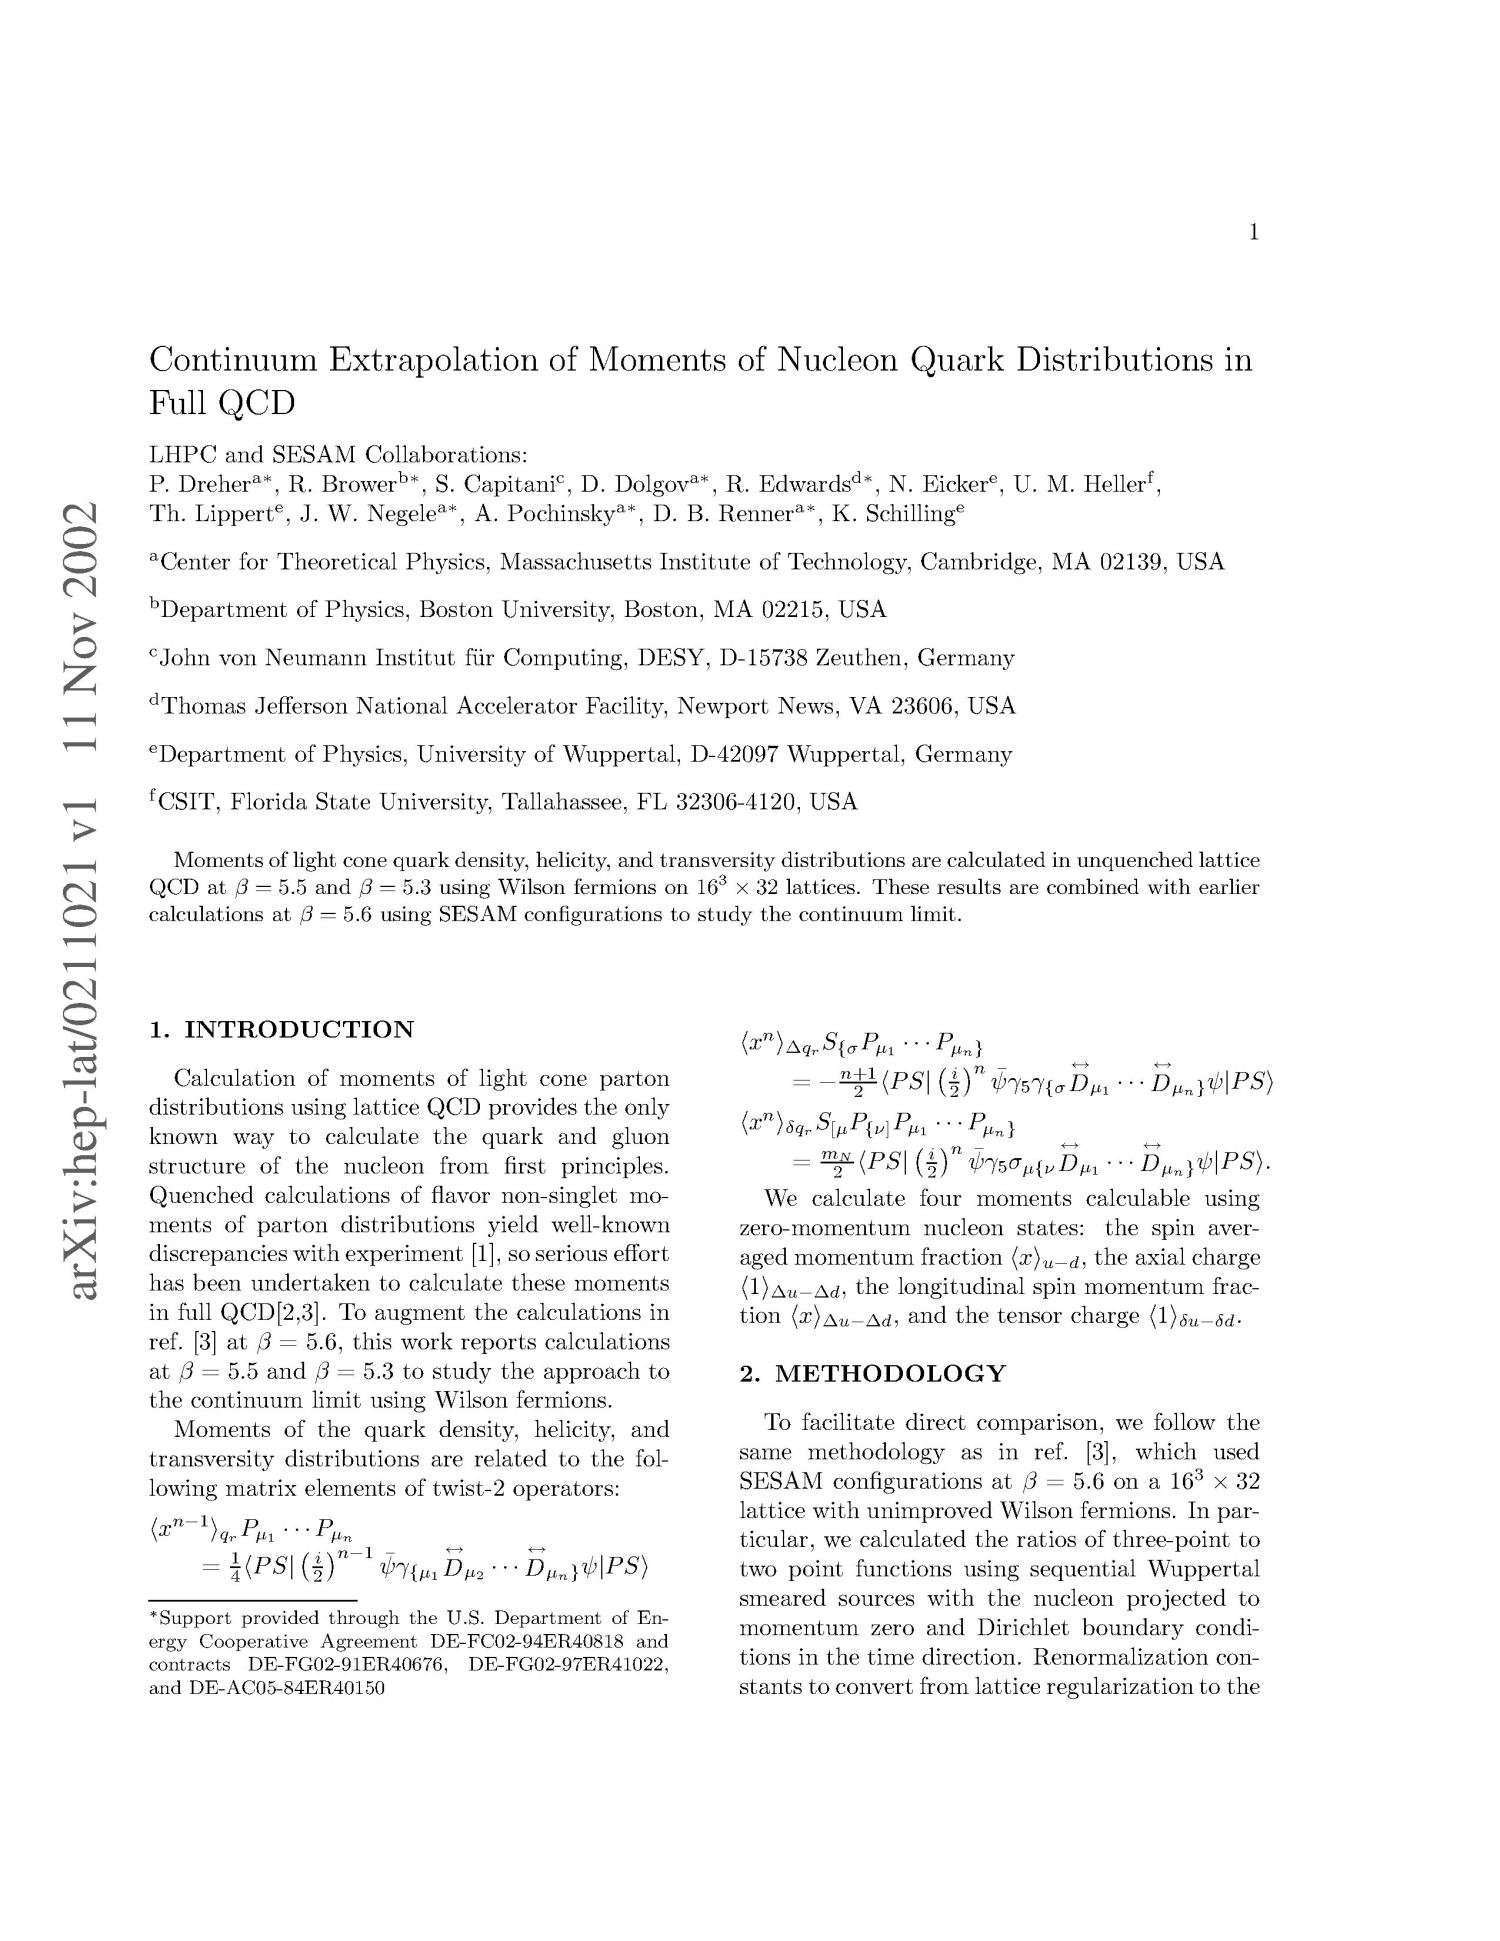 Continuum Extrapolation of Moments Nucleon Quark Distributions in Full QCD                                                                                                      [Sequence #]: 1 of 3